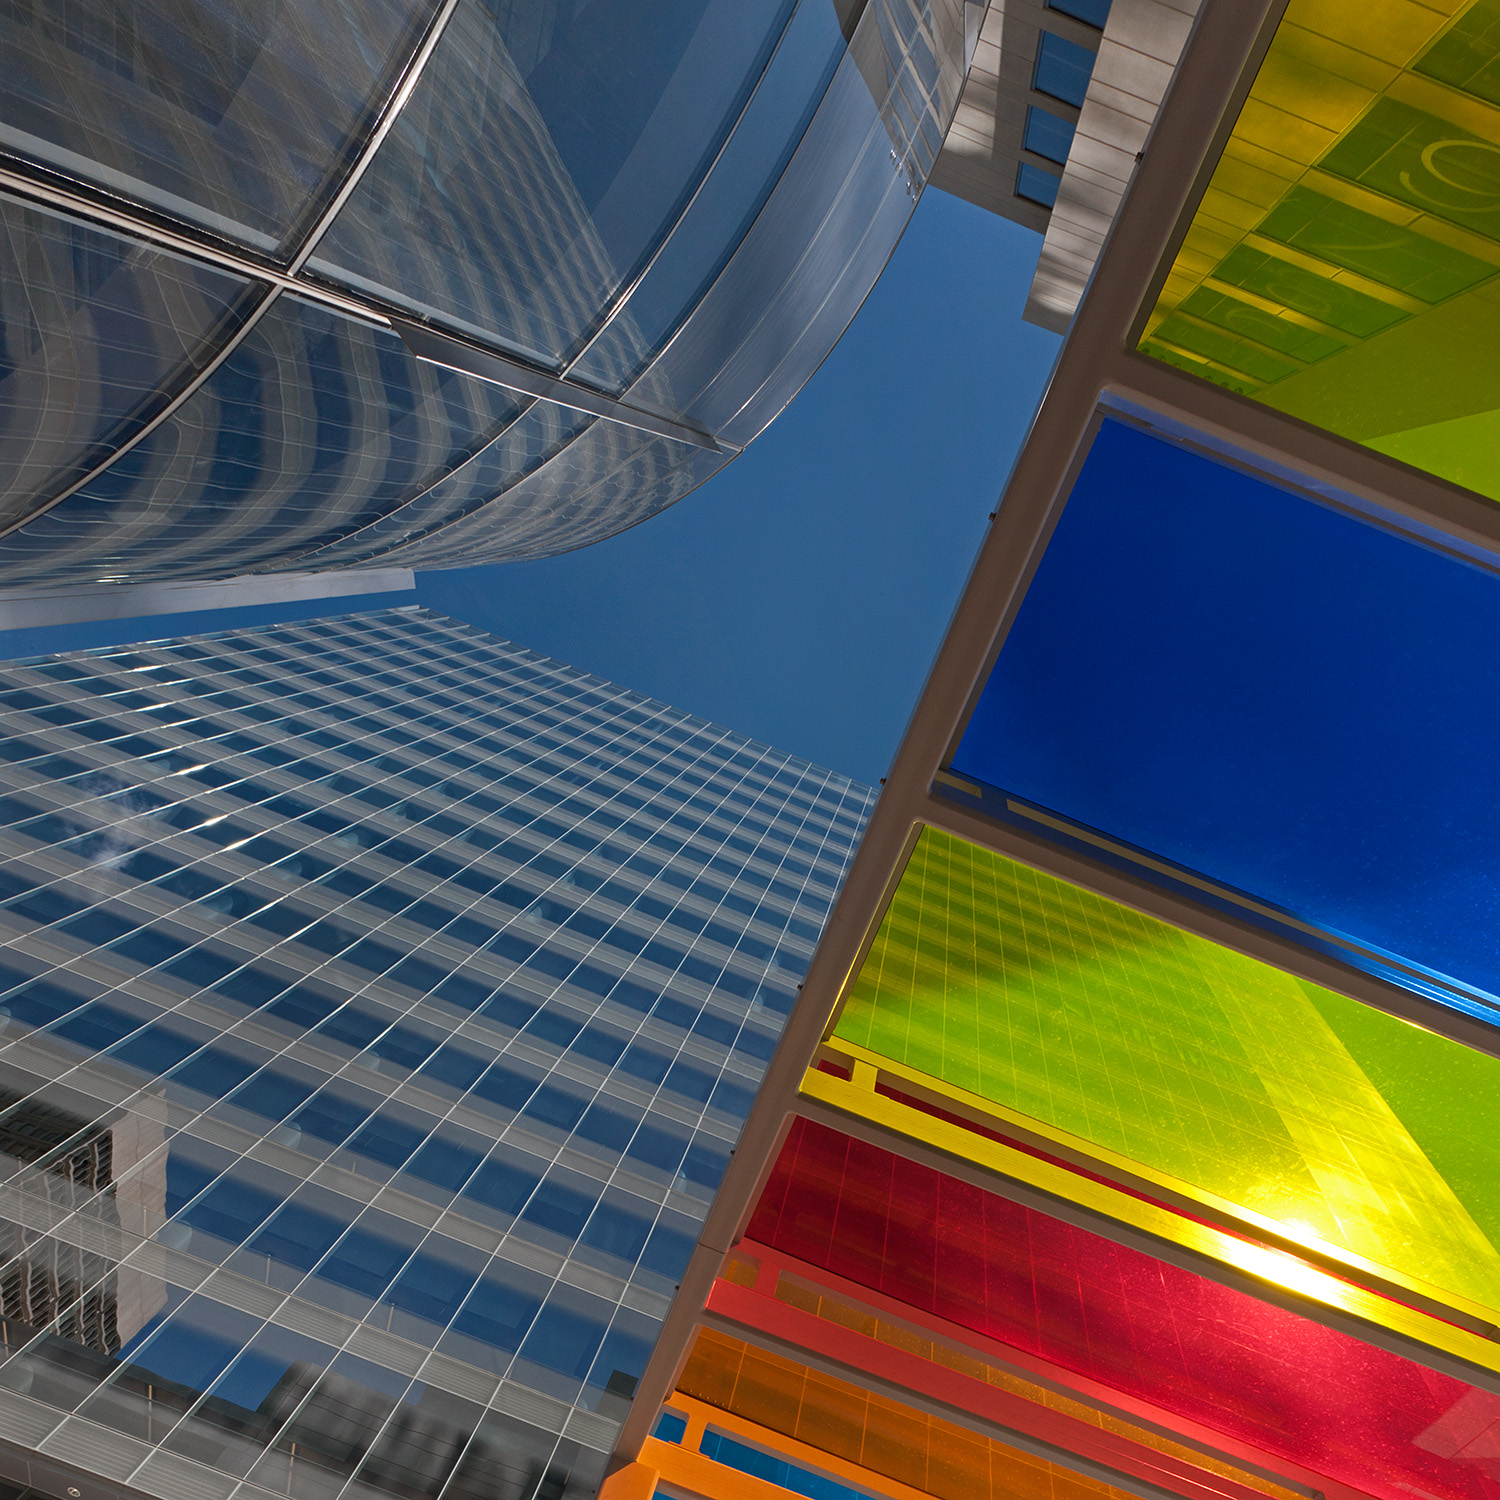 Centene Building / St. Louis MO / HOK/ Canopy by Liam Gillick